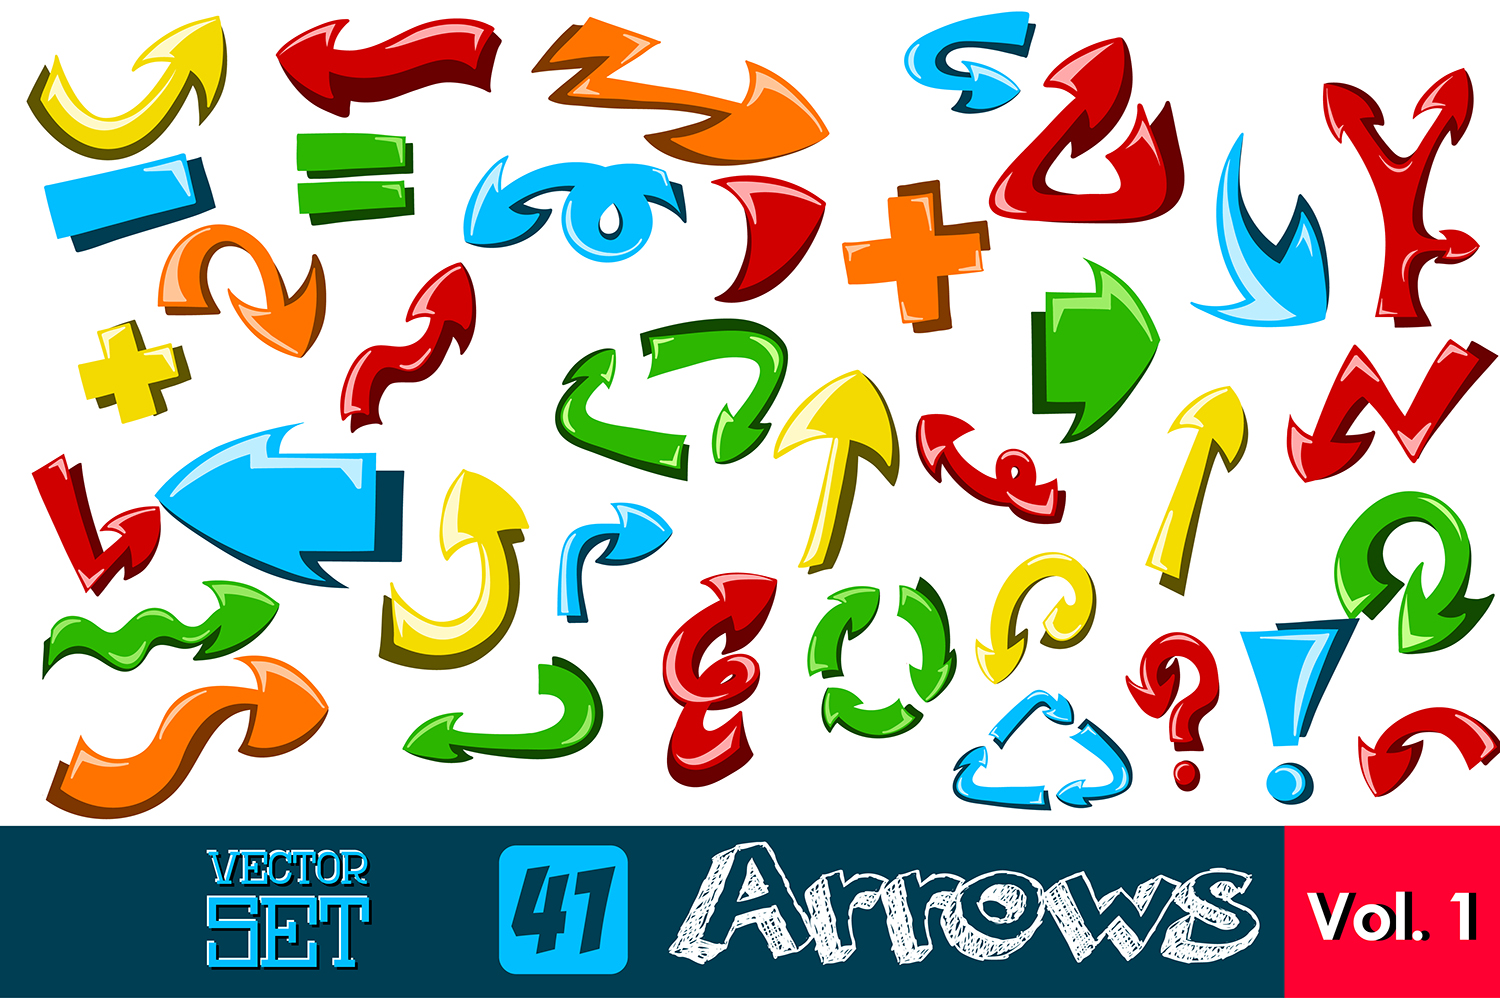 41 hand made arrows set. Vol. 1 example image 2